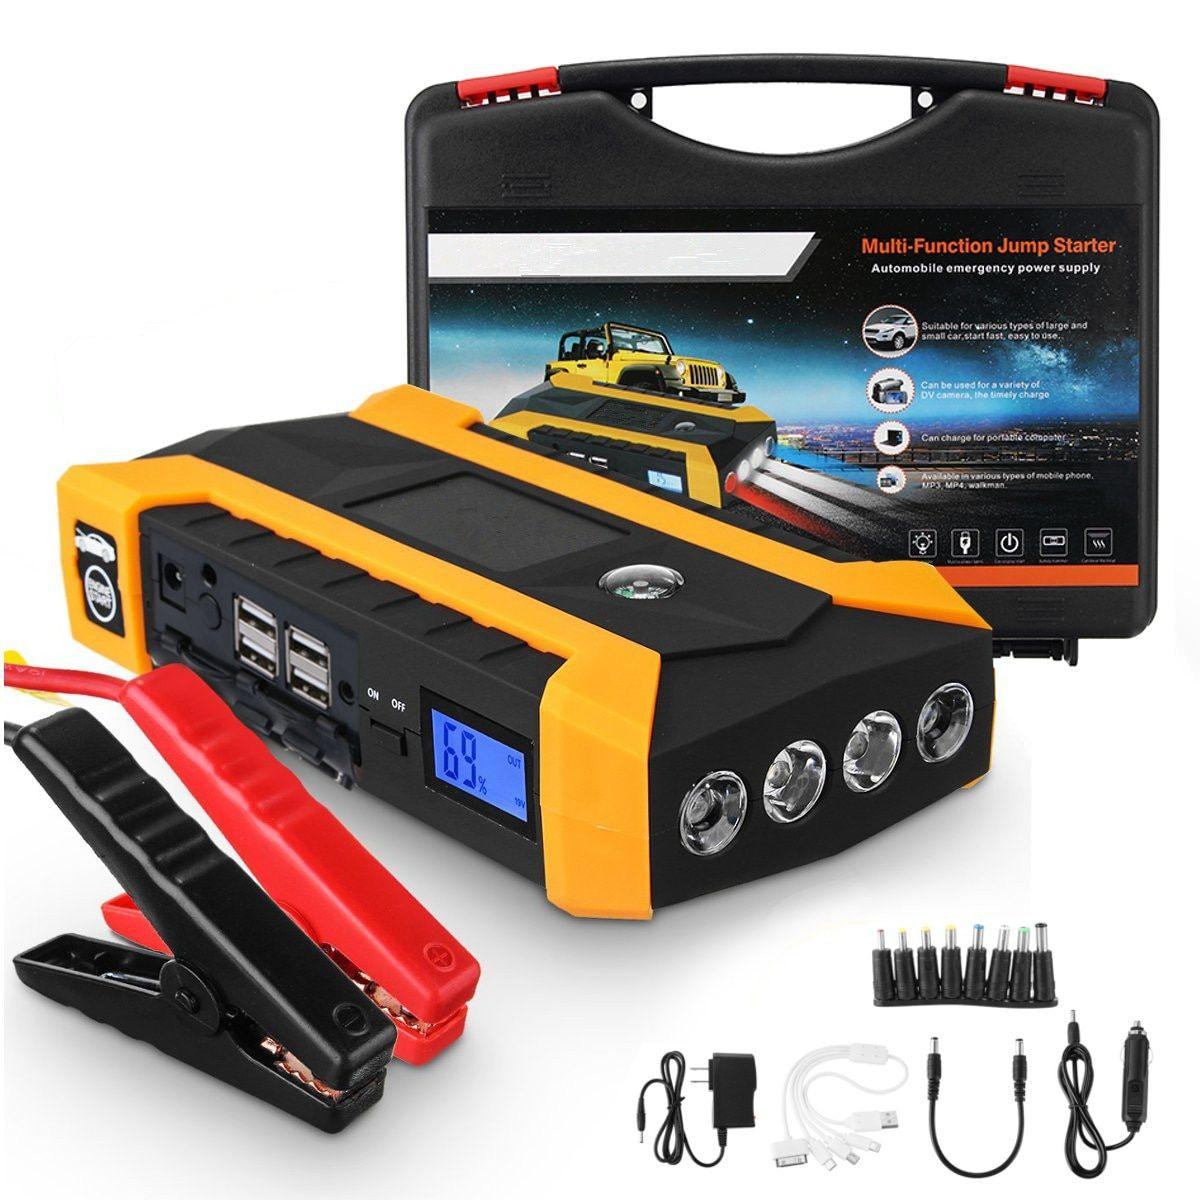 Multifunction Jump Starter 89800mAh 12V 4USB 600A Portable Car Battery Booster Charger Booster Power Bank Starting Device